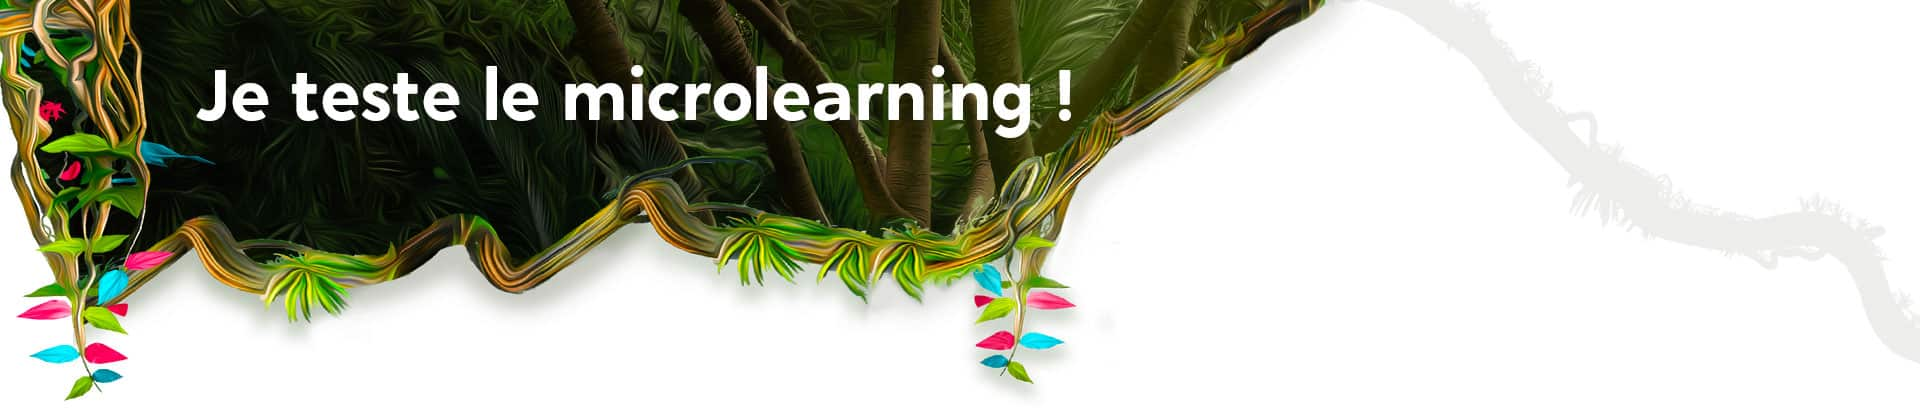 Test microlearning